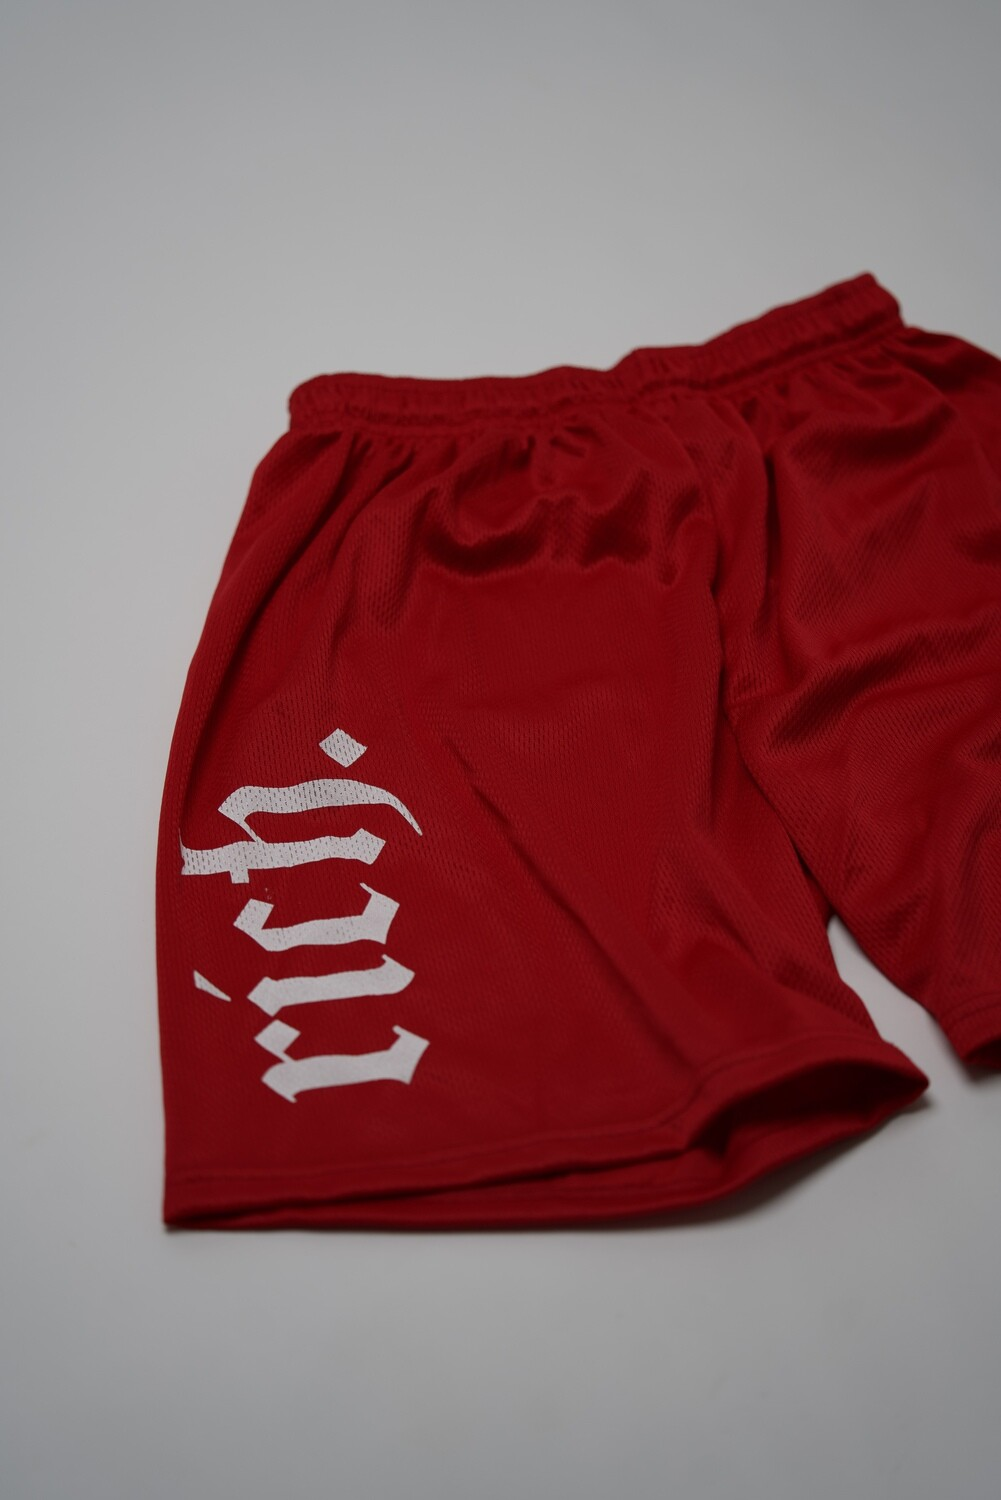 RICH Athletic Shorts (Red)